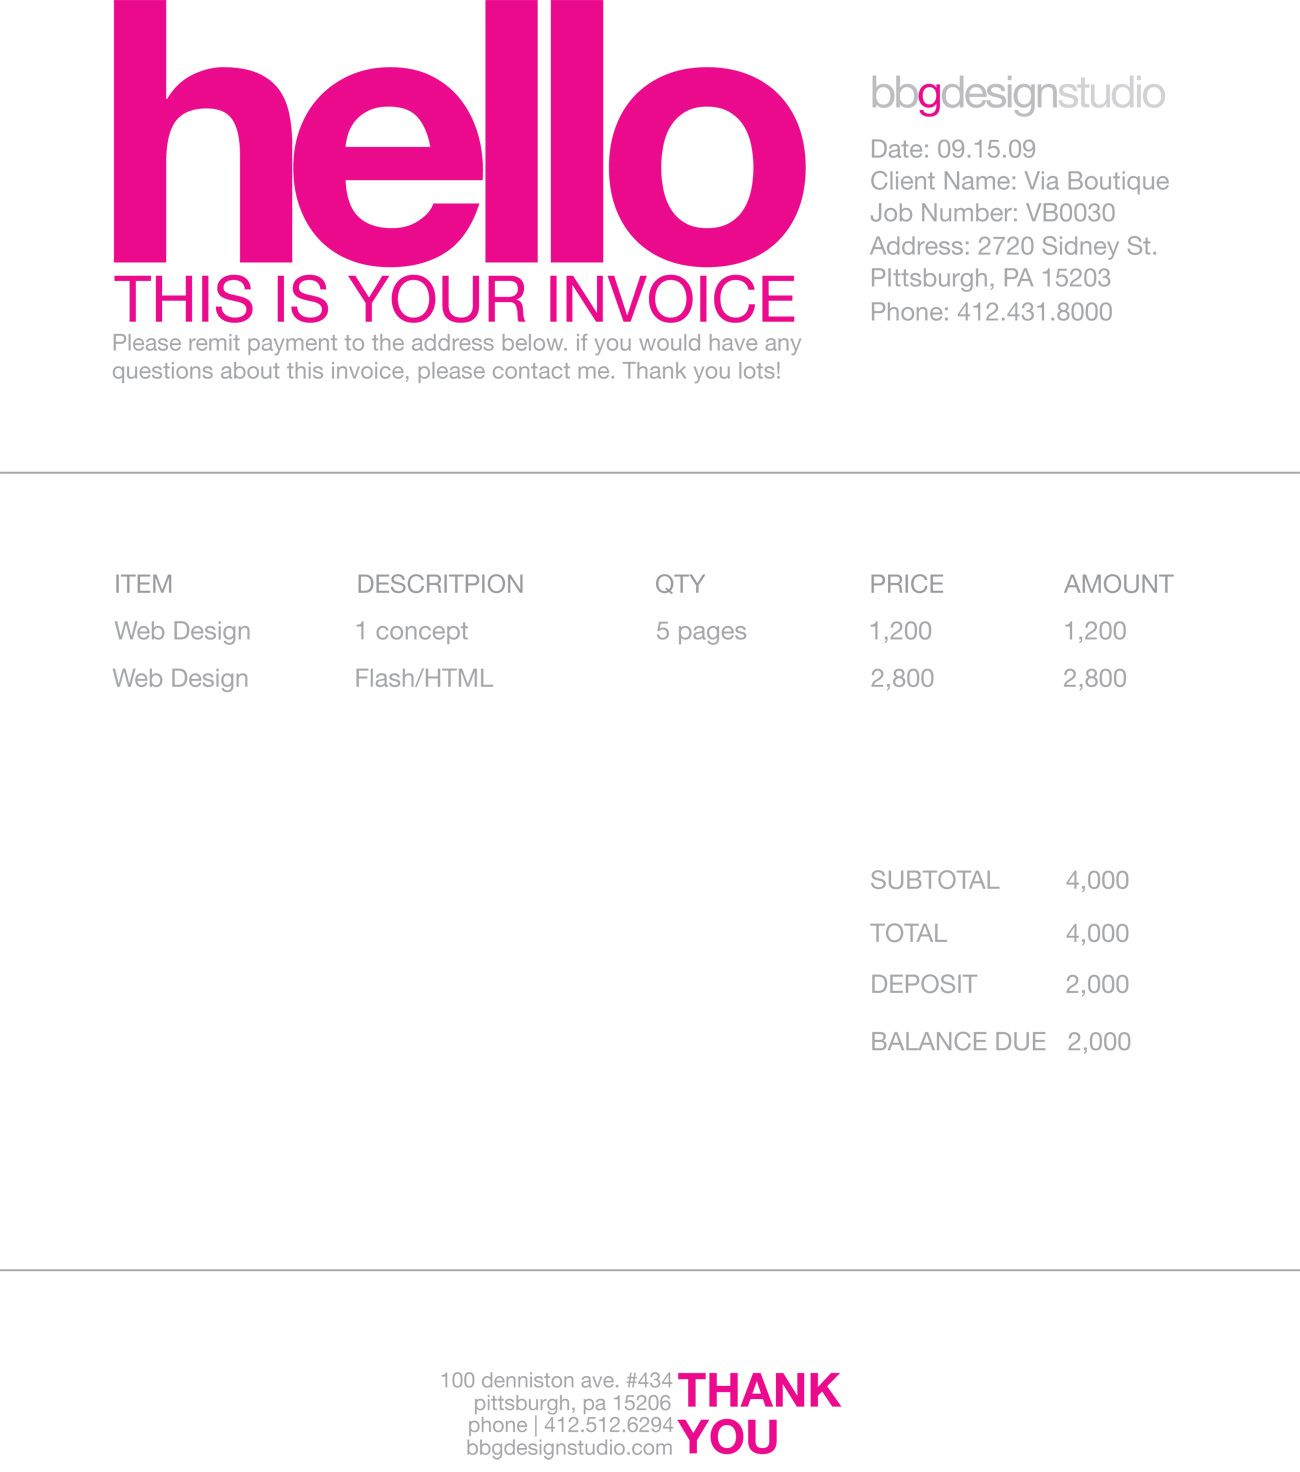 Aldiablosus  Unusual  Images About Invoice Design On Pinterest With Marvelous Invoice Letter Template Besides Printable Invoice Free Furthermore Mechanic Invoice Template With Amusing Custom Invoice Printing Also Invoice Order In Addition Custom Invoice Book And Sending Paypal Invoice As Well As Sponsorship Invoice Additionally How Do You Send An Invoice On Paypal From Pinterestcom With Aldiablosus  Marvelous  Images About Invoice Design On Pinterest With Amusing Invoice Letter Template Besides Printable Invoice Free Furthermore Mechanic Invoice Template And Unusual Custom Invoice Printing Also Invoice Order In Addition Custom Invoice Book From Pinterestcom